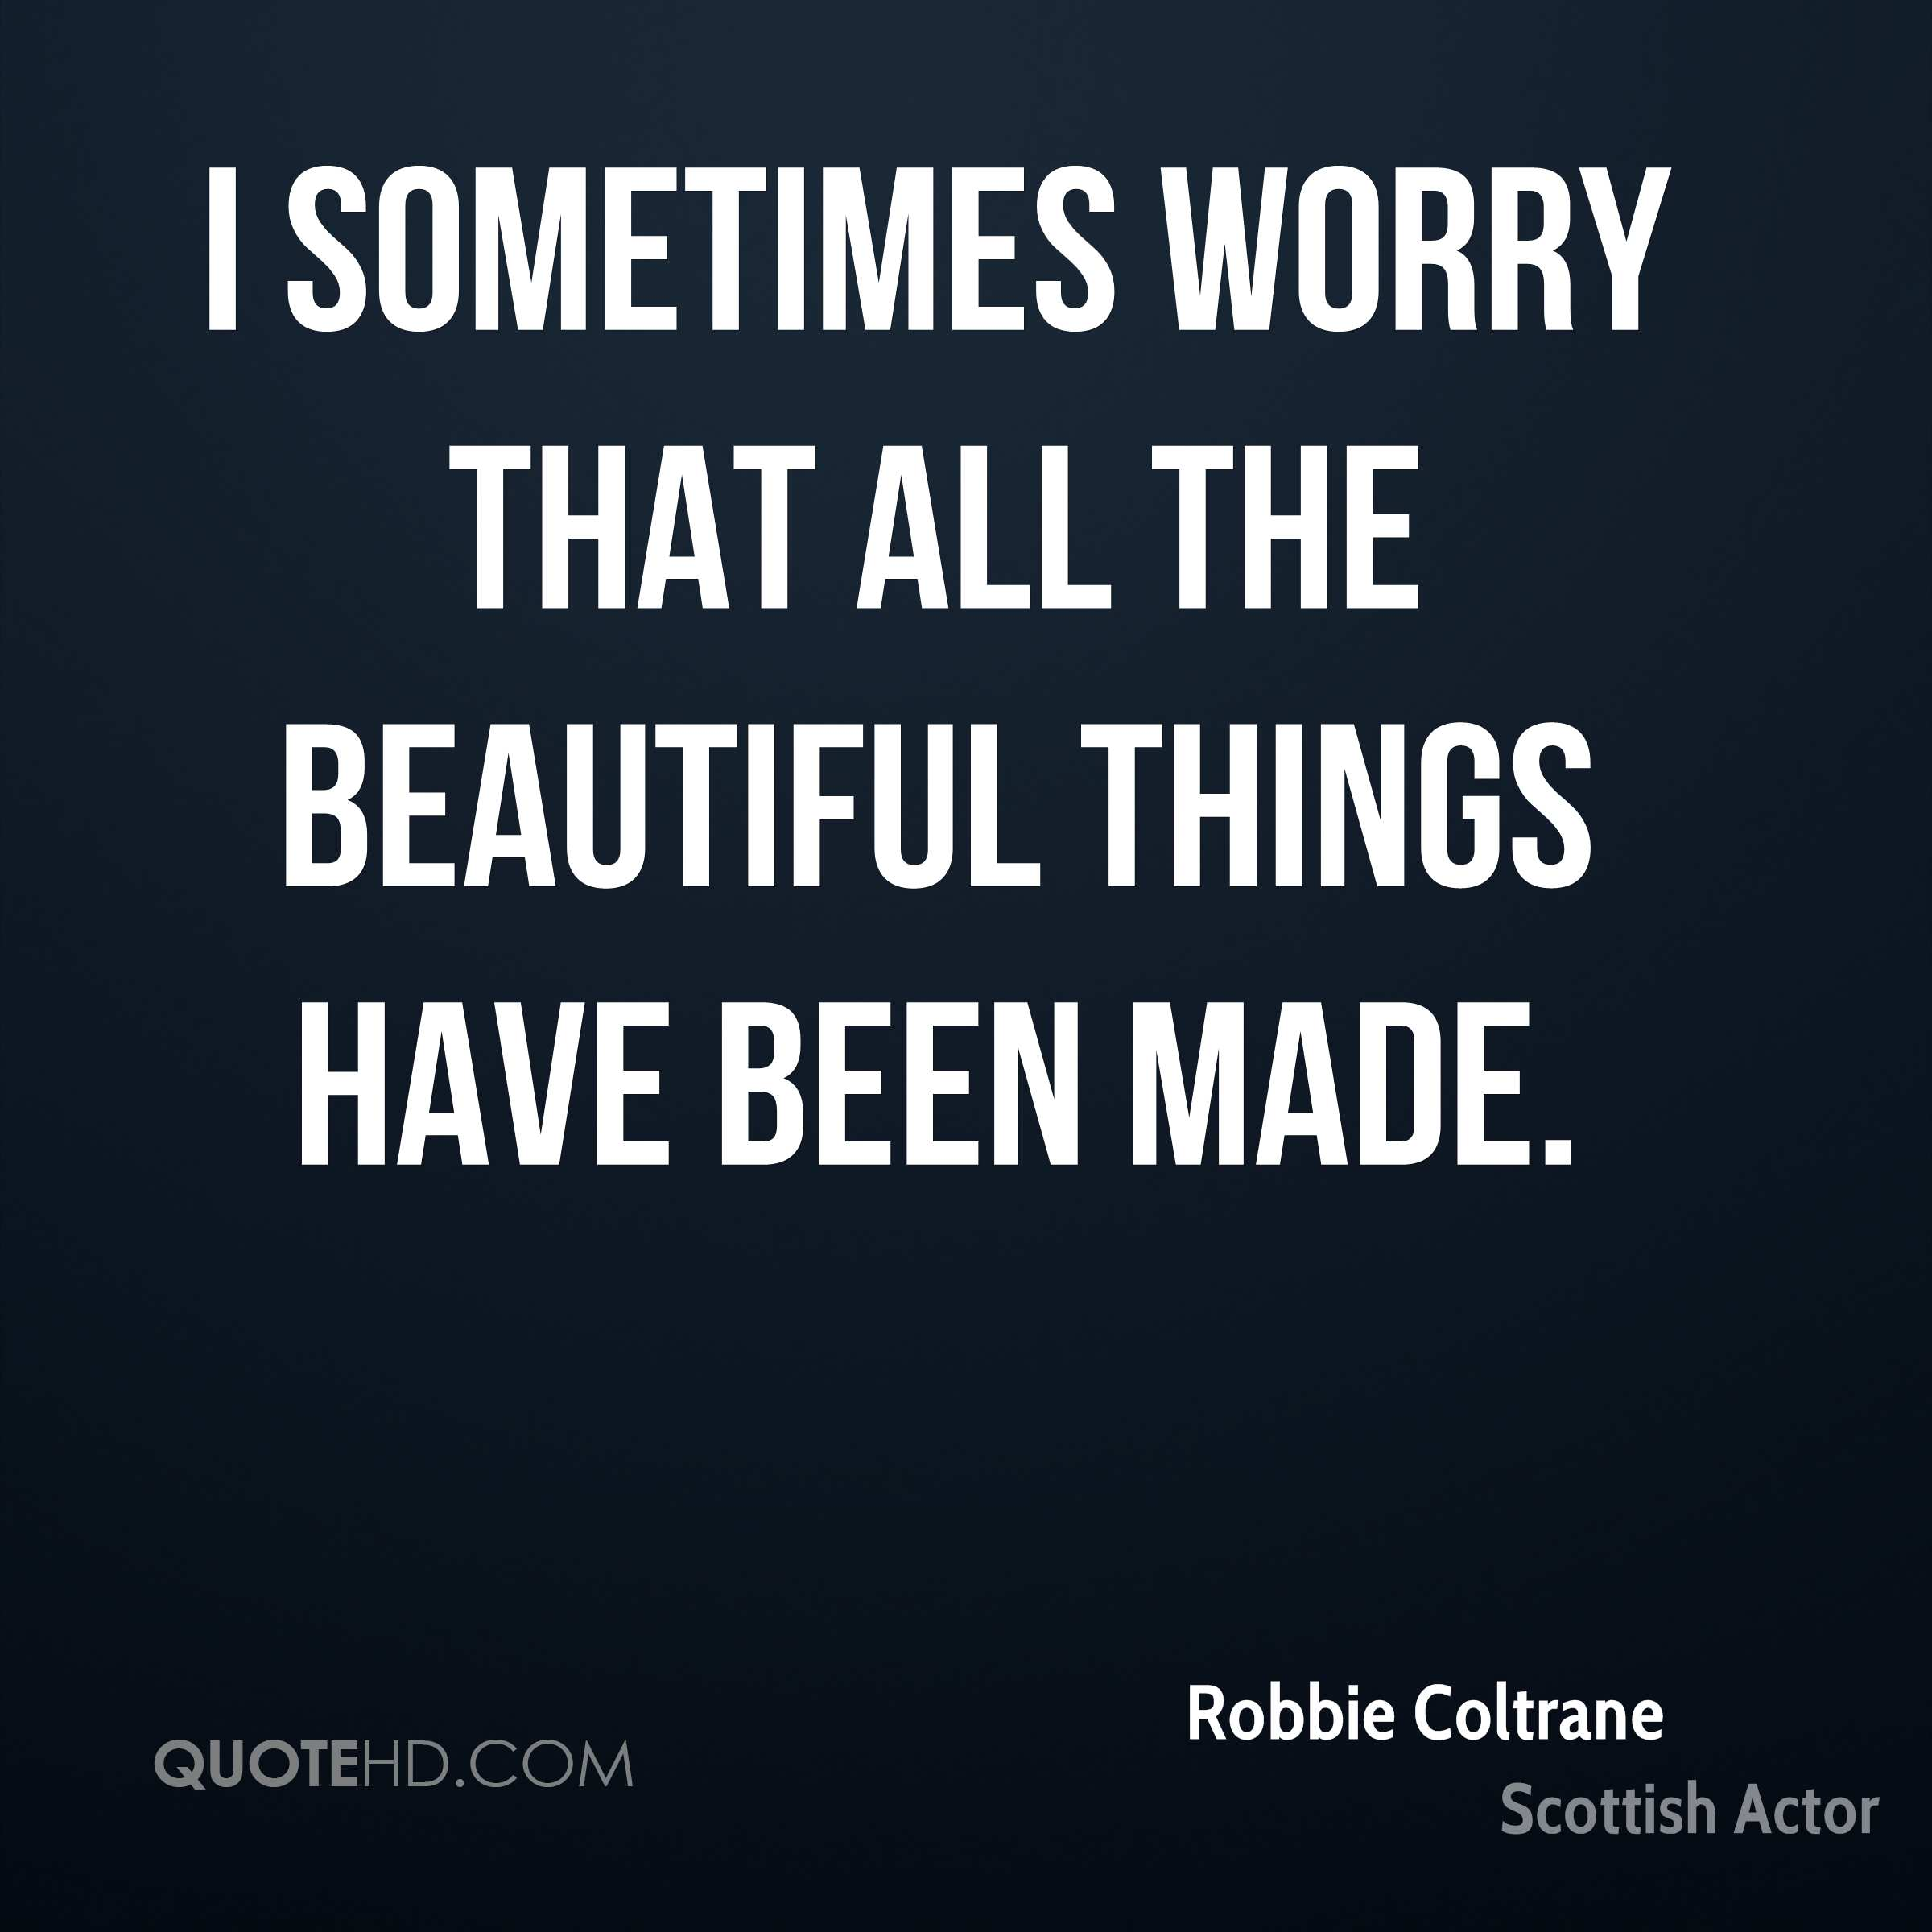 I sometimes worry that all the beautiful things have been made.